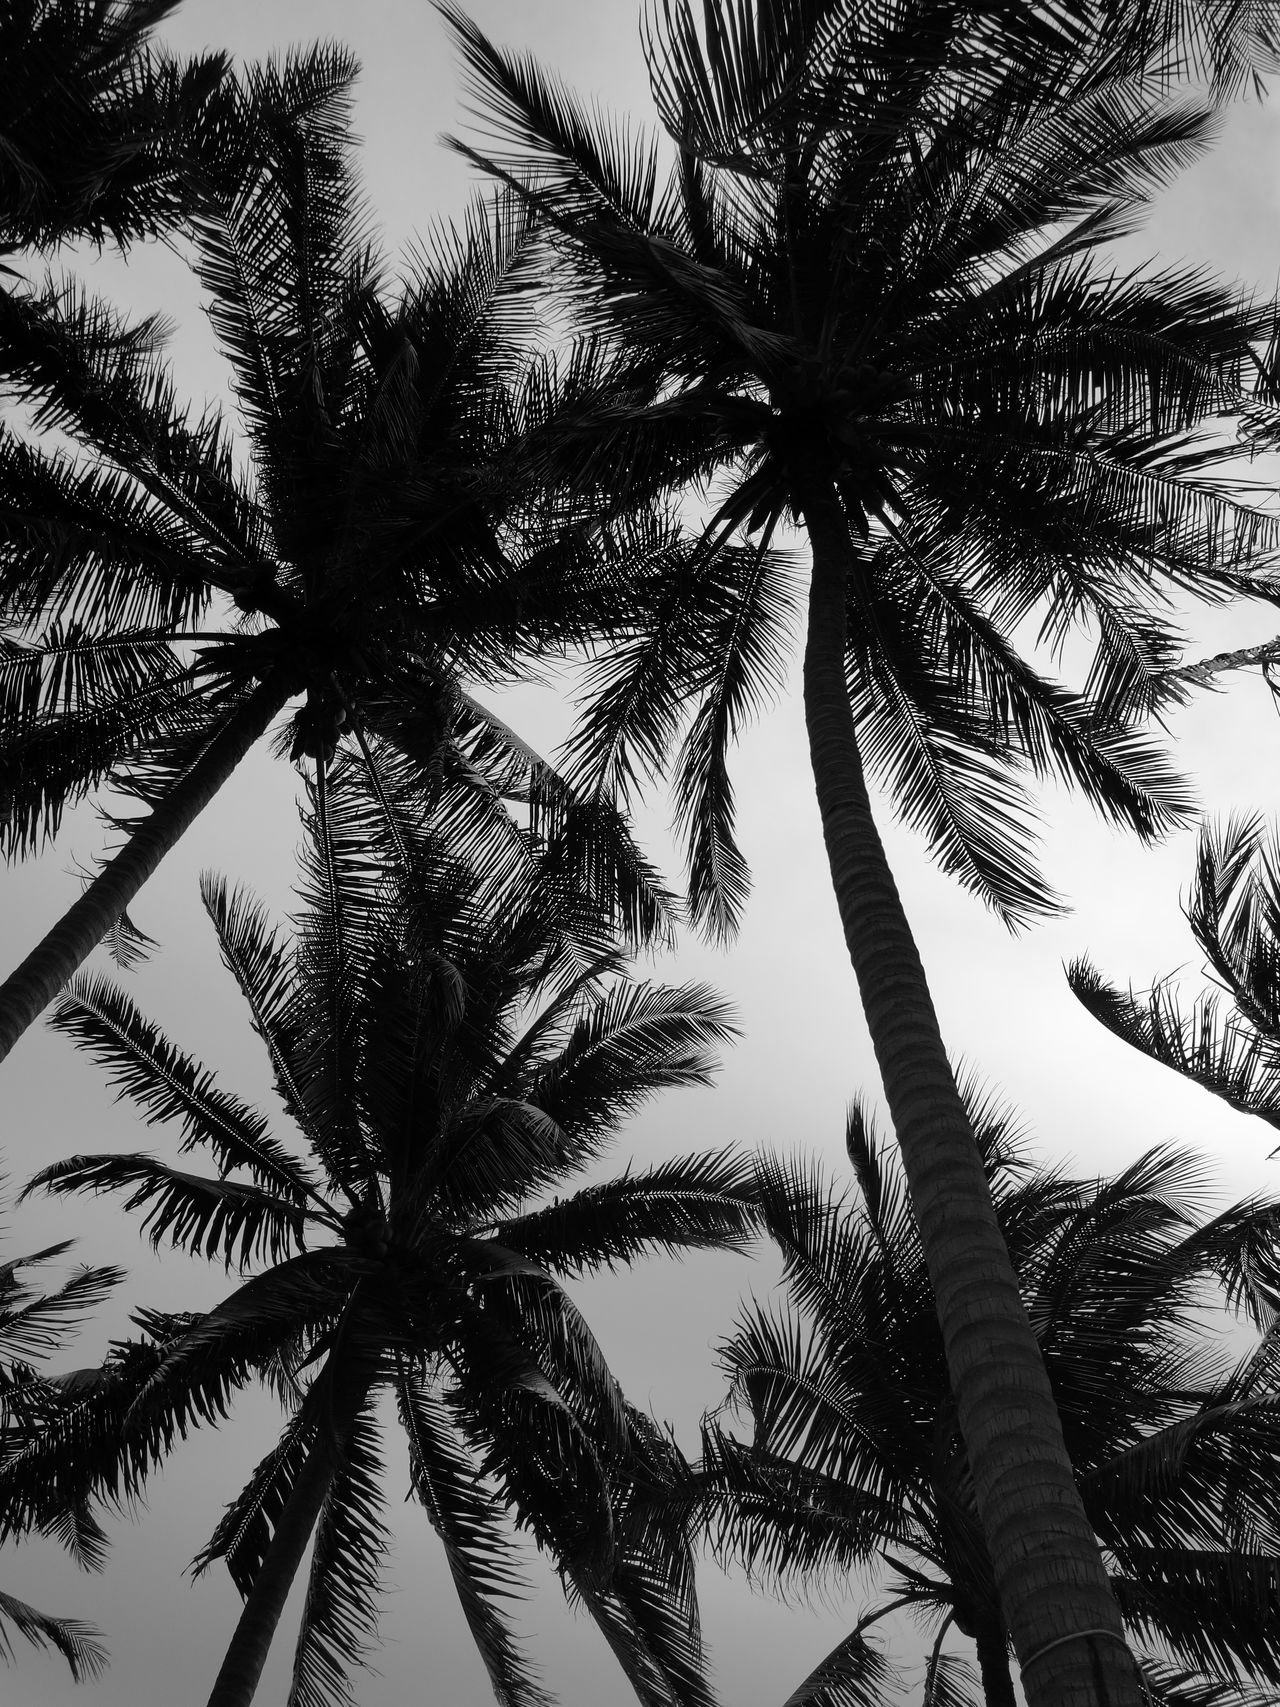 Mobilephotography Monochrome Myhuaweip9 Low Angle View Palm Tree Tree Trunk Growth Tree Scenics Tall - High Tranquility Tranquil Scene Nature Beauty In Nature Sky Clear Sky Branch Outdoors Day Directly Below Treetop Tall Non-urban Scene Coconuts Thailand